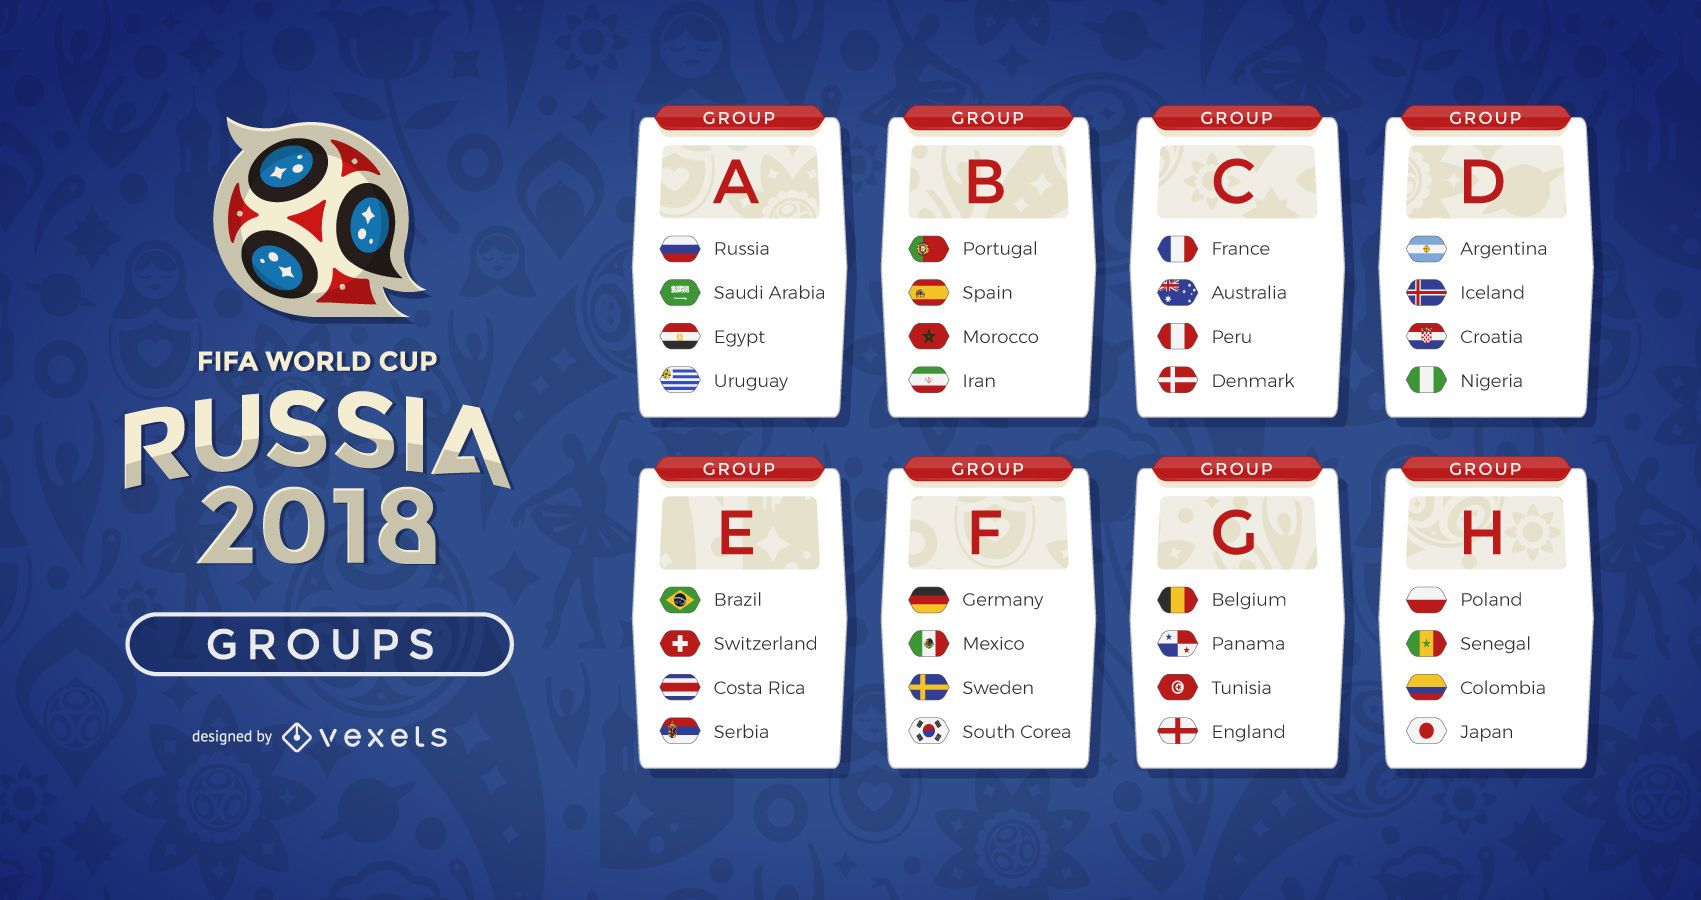 World Cup 2018 Groups Stage